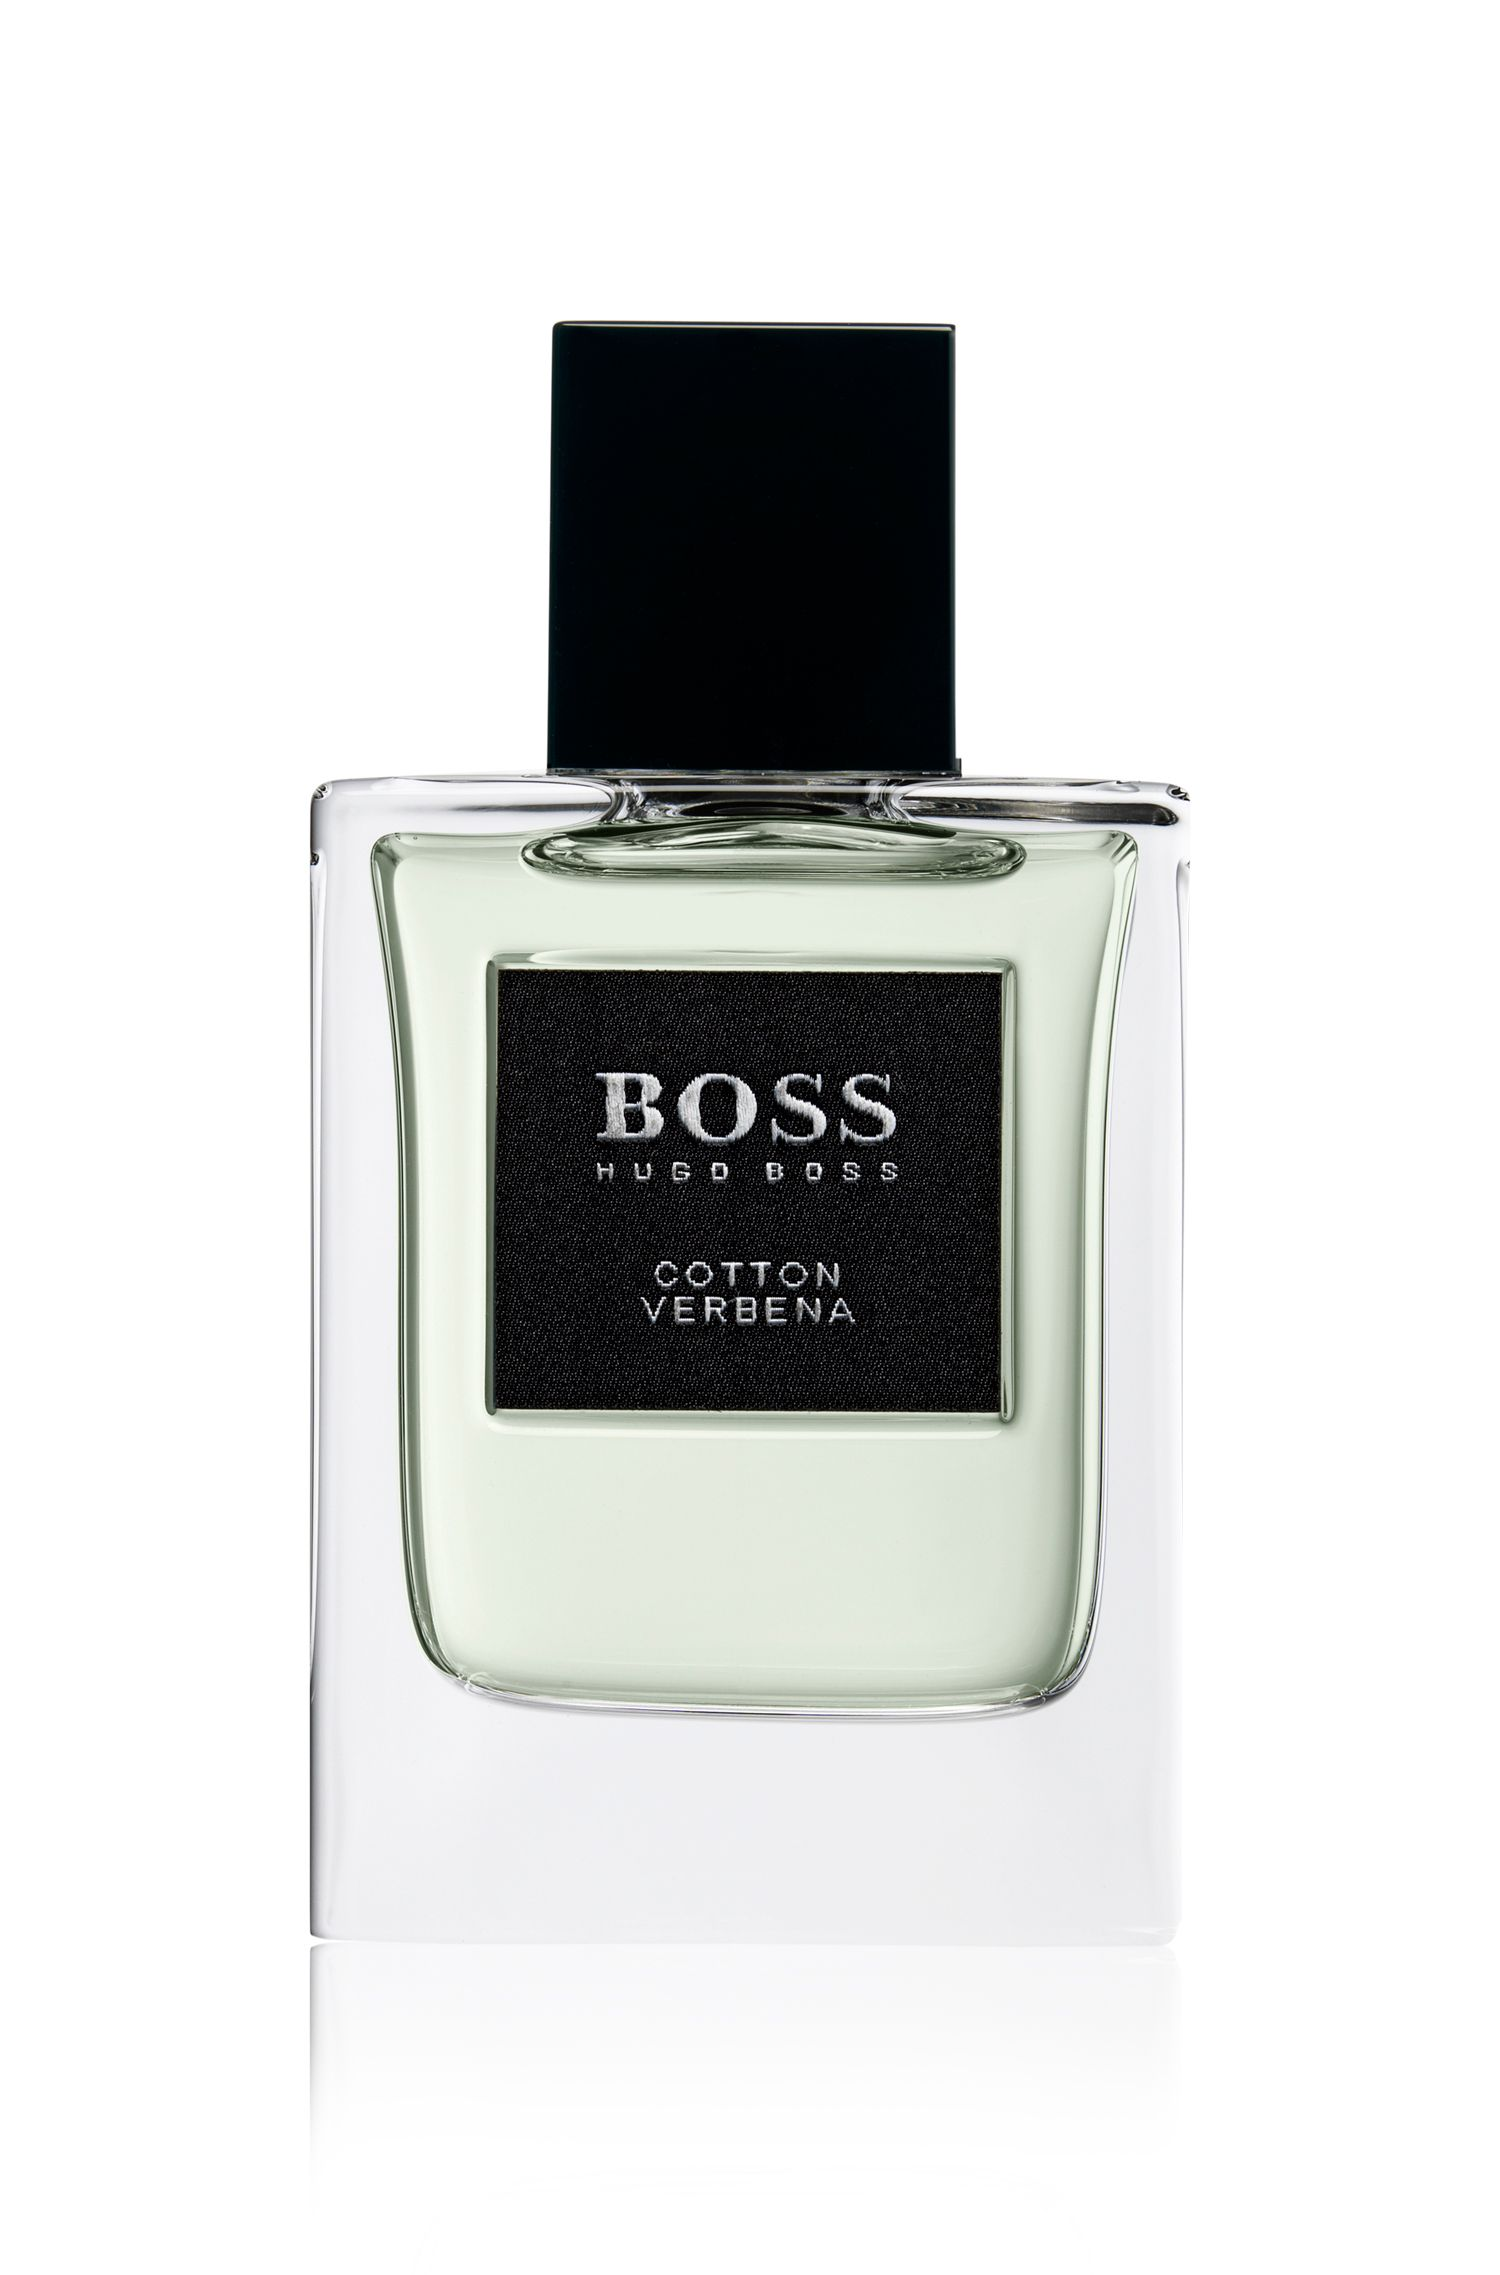 'BOSS The Collection' | 1.7 fl. oz. (50 mL) Cotton & Verbena Eau de Toilette